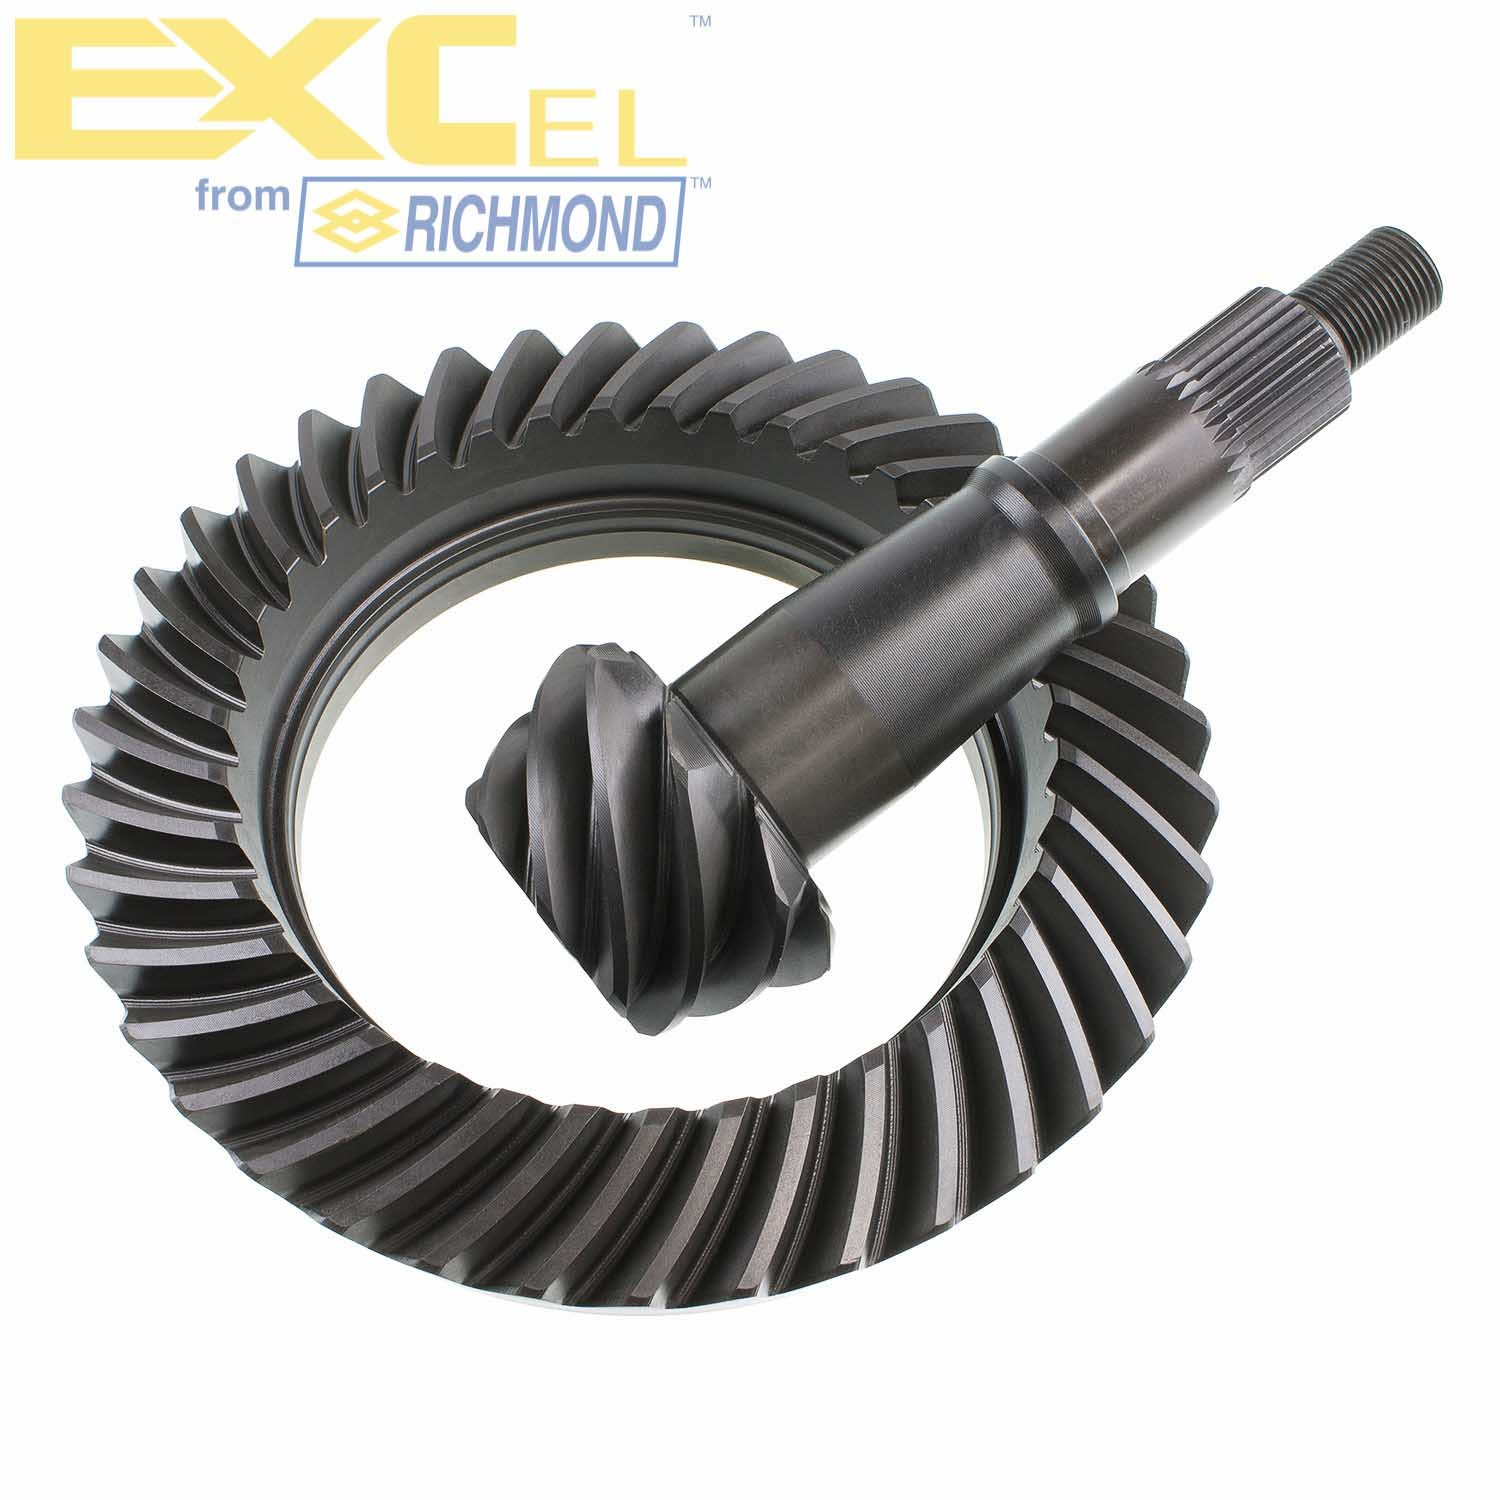 EXCEL from Richmond GM95488 Differential Ring And Pinion